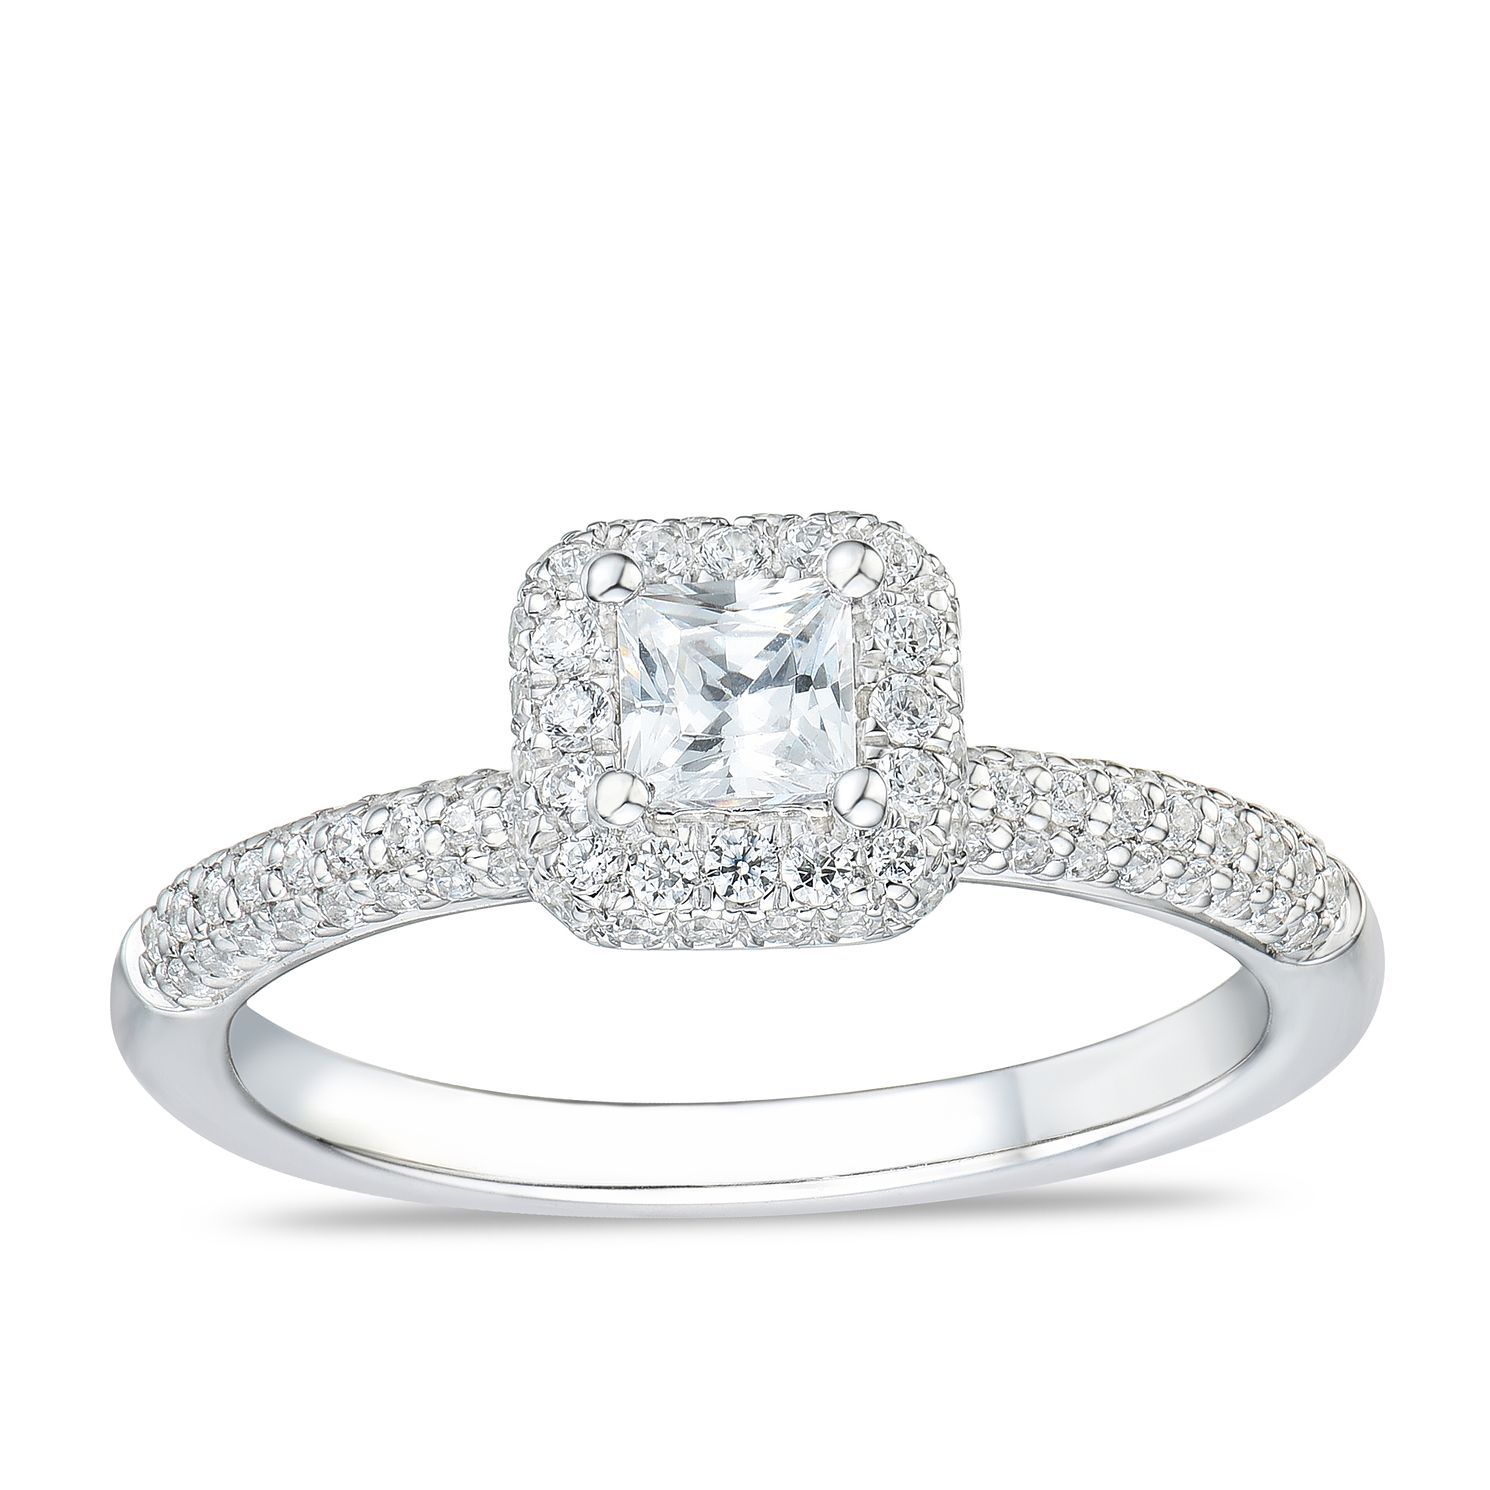 Tolkowsky 18ct White Gold 3/4ct Diamond Princess Halo Ring - Product number 4176391